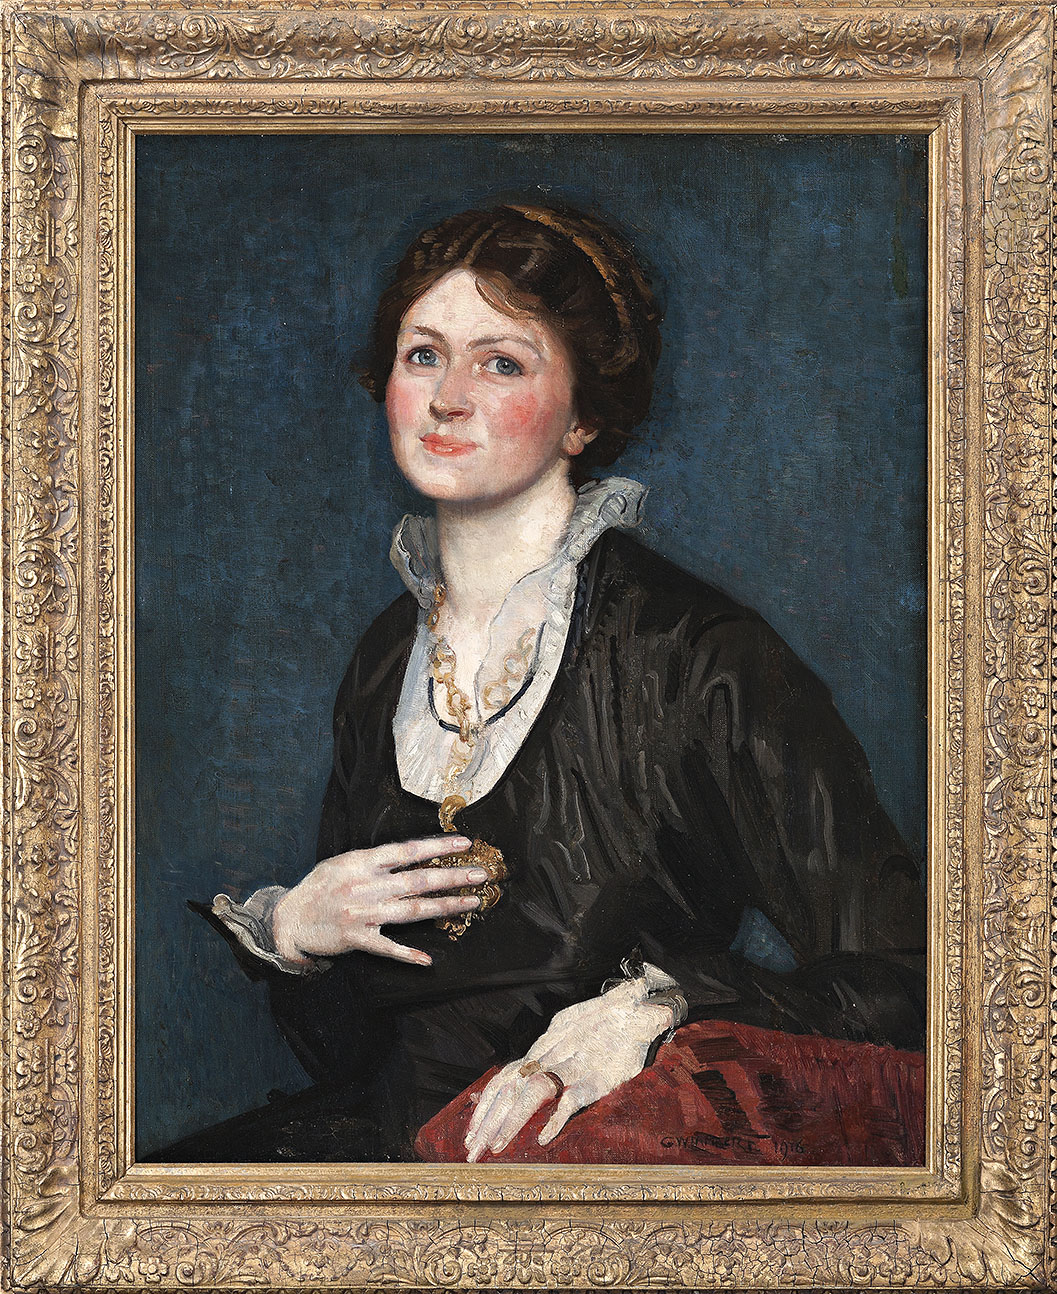 George W Lambert's portrait of an unidentified sitter, found at auction in the UK.